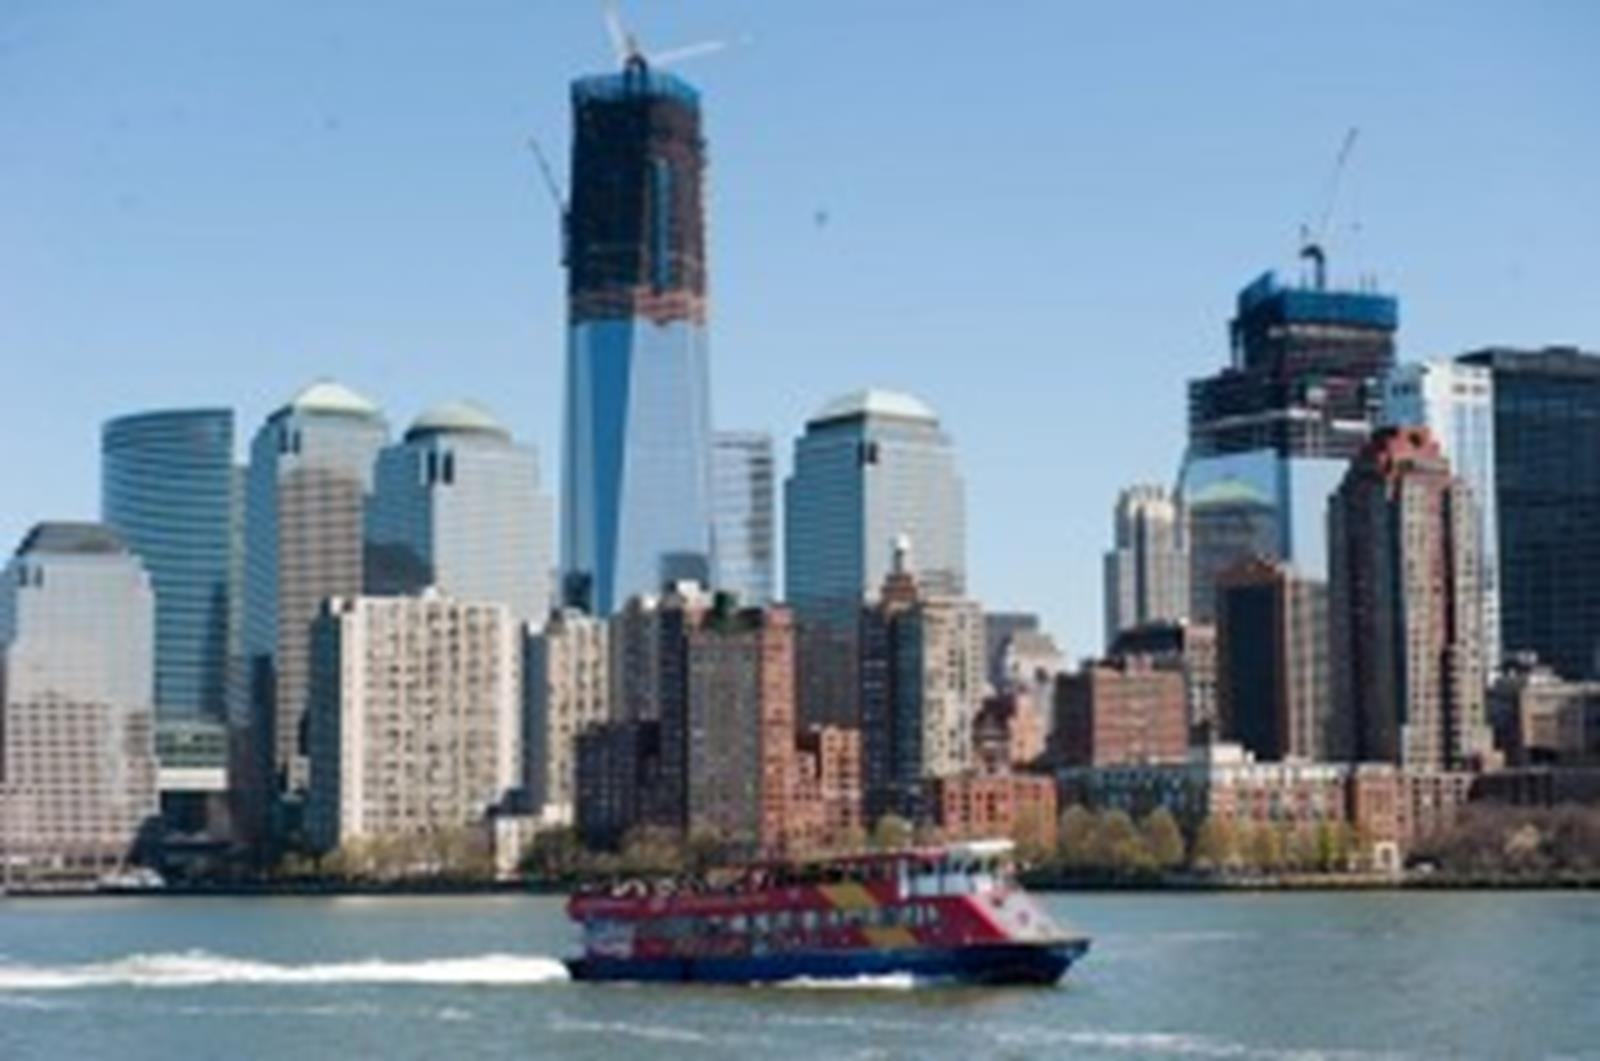 Enjoy views of the new One World Trade Center.